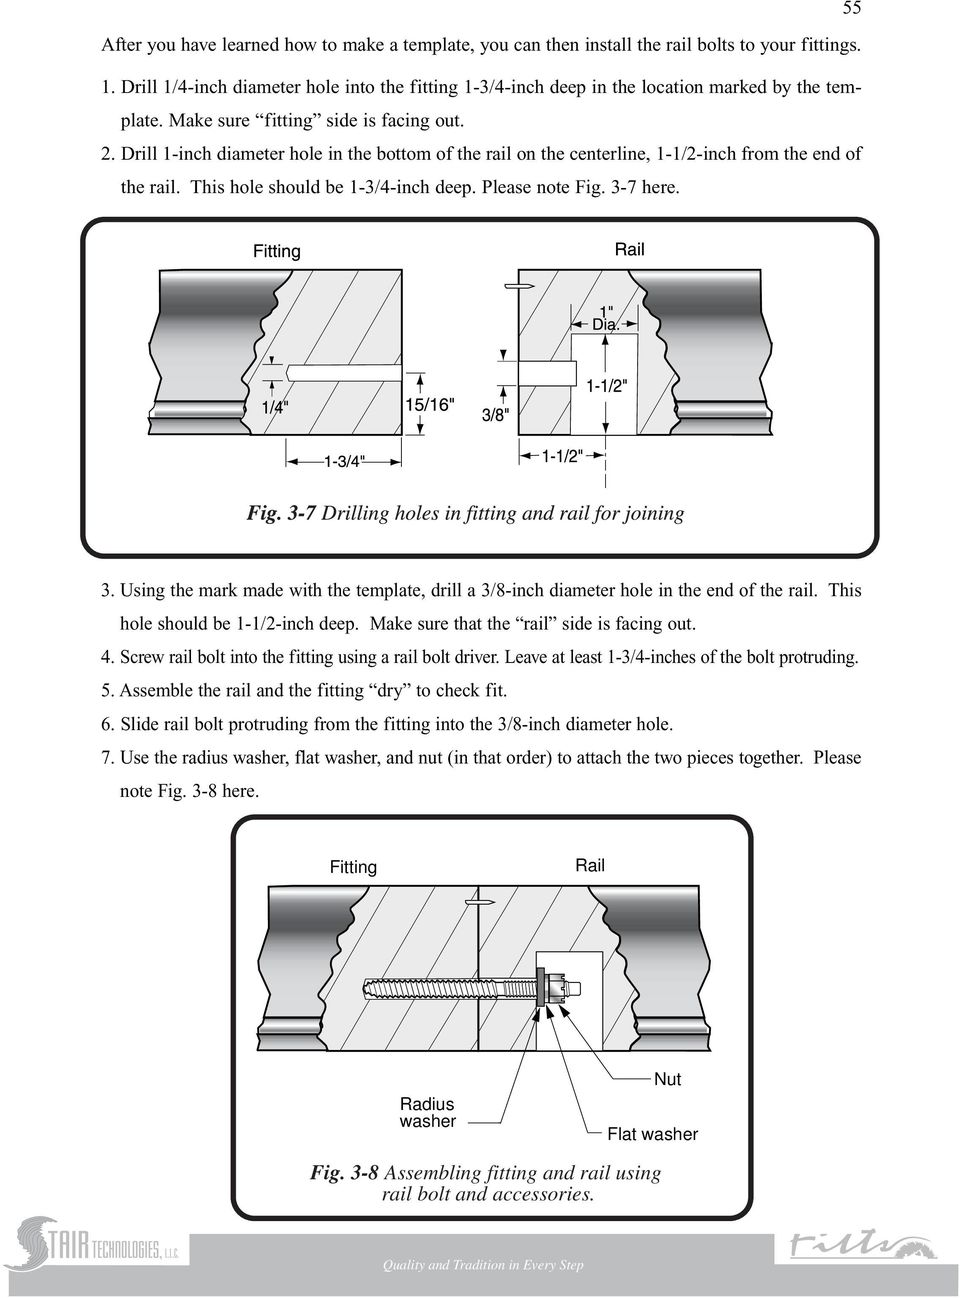 Drill 1-inch diameter hole in the bottom of the rail on the centerline, 1-1/2-inch from the end of the rail. This hole should be 1-3/4-inch deep. Please note Fig. 3-